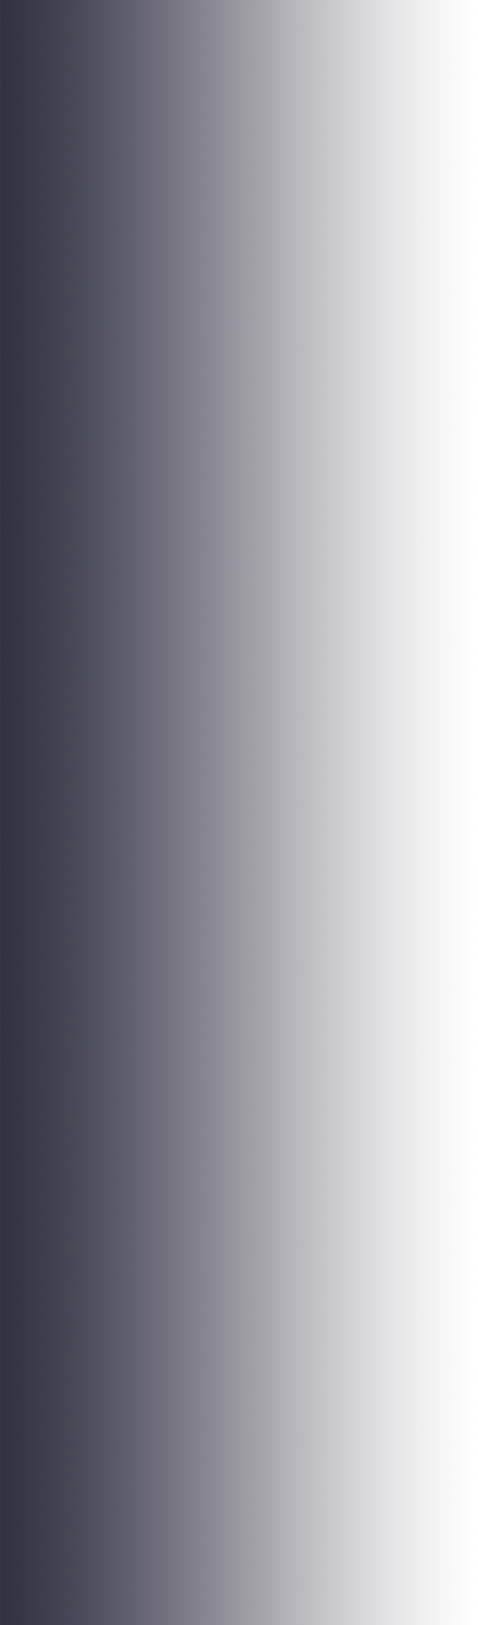 Dark Blue Gradient 2.png